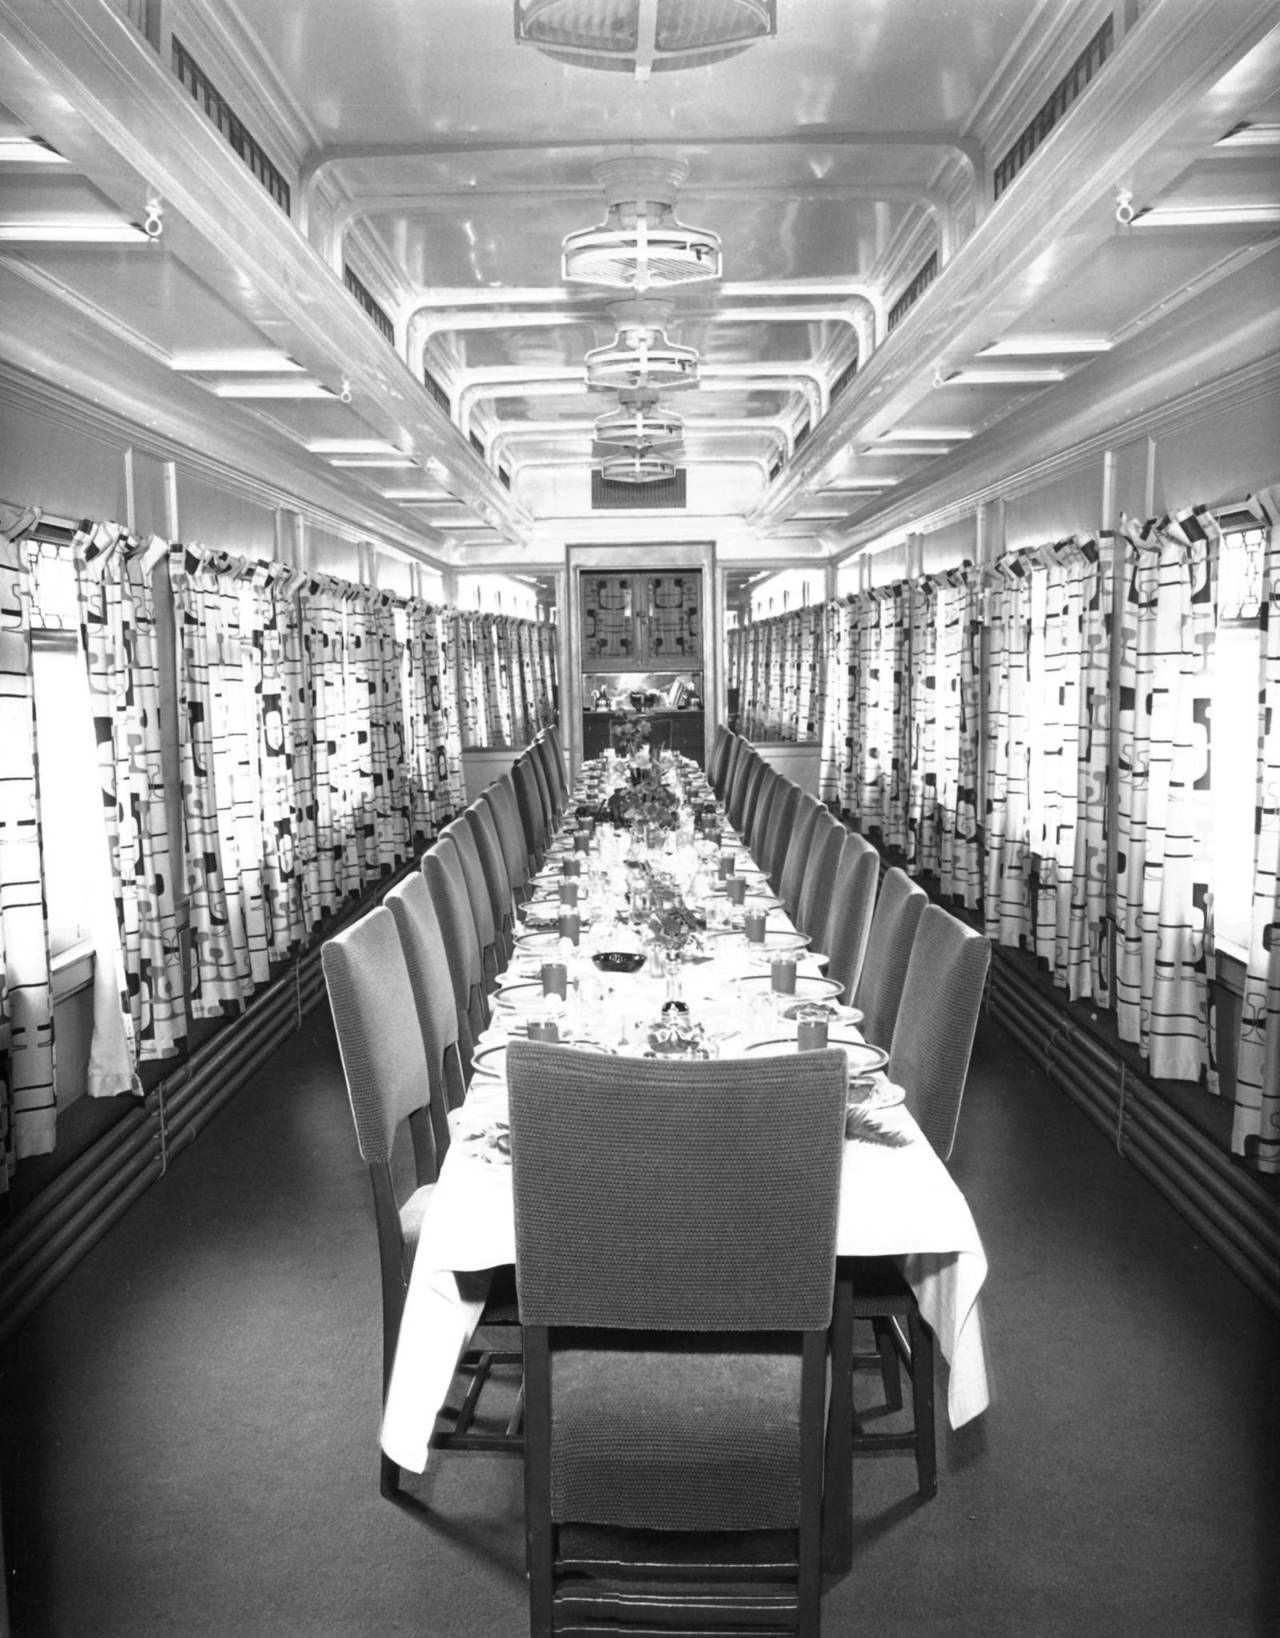 A dining car on display at the Chicago Railroad Fair in